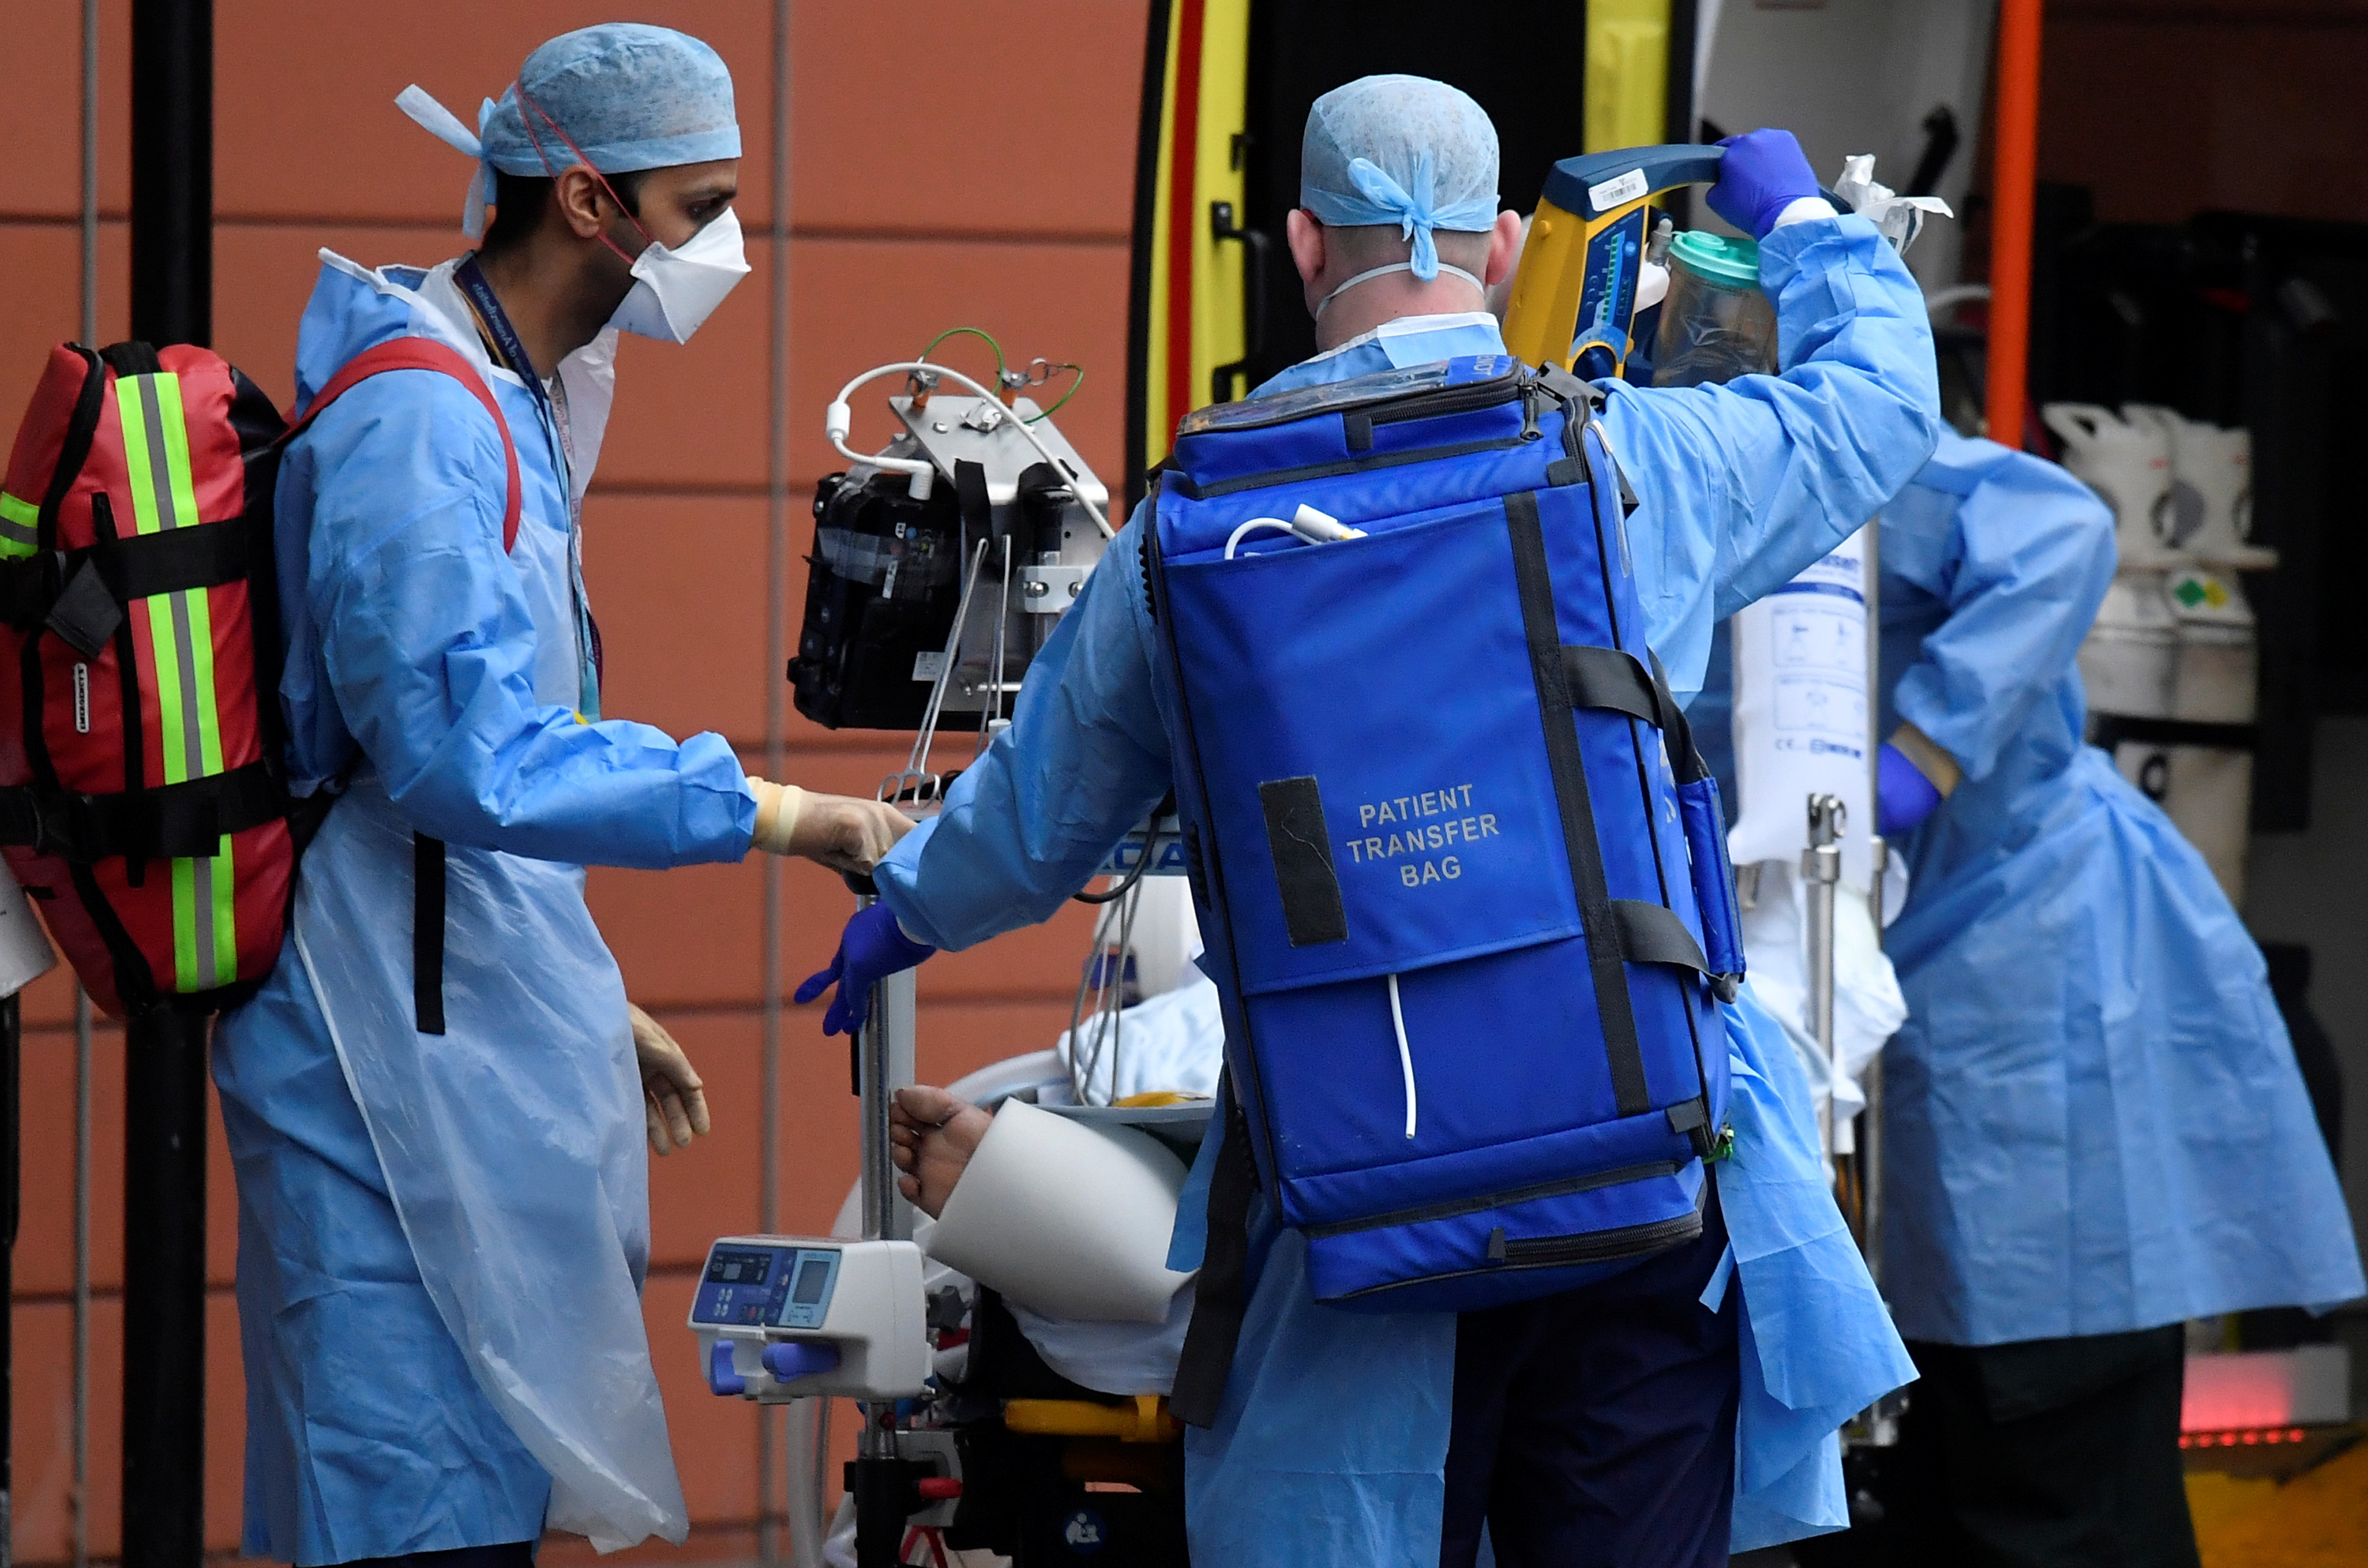 Medical workers move a patient between ambulances outside of the Royal London Hospital amid the spread of the coronavirus disease (COVID-19) pandemic, London, Britain, January 27, 2021. REUTERS/Toby Melville